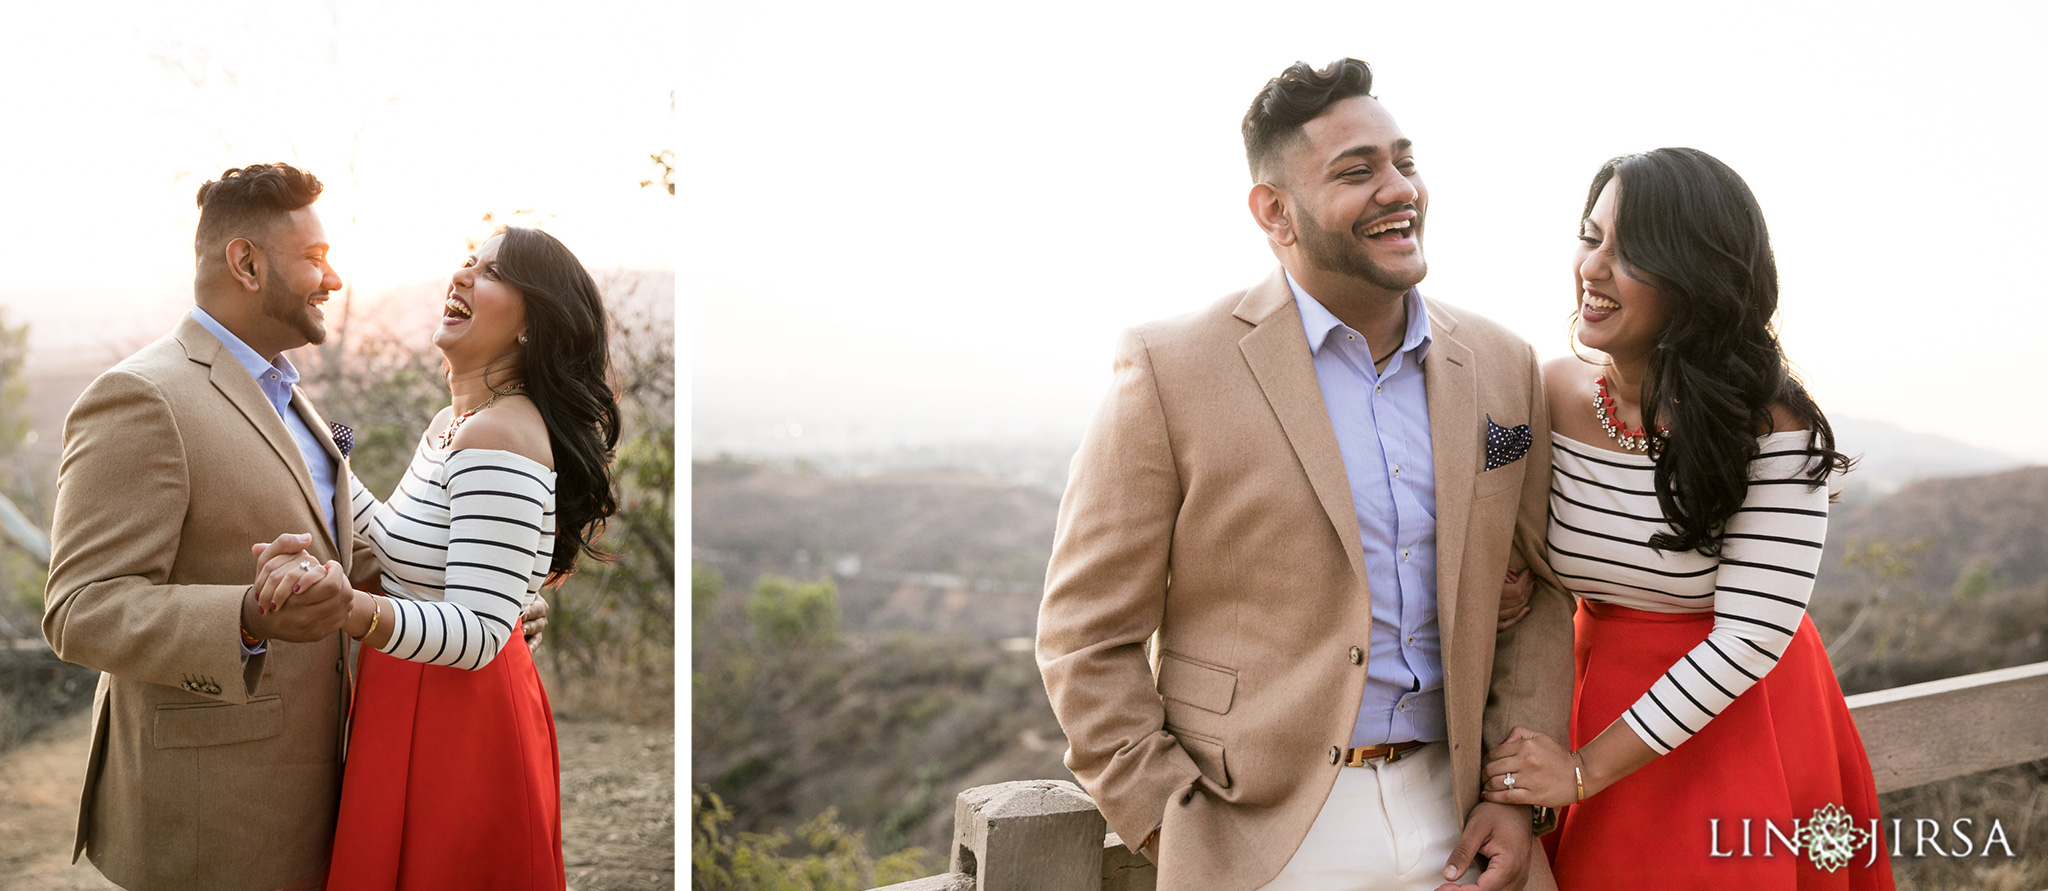 03-los-angeles-griffith-observatory-engagement-photography